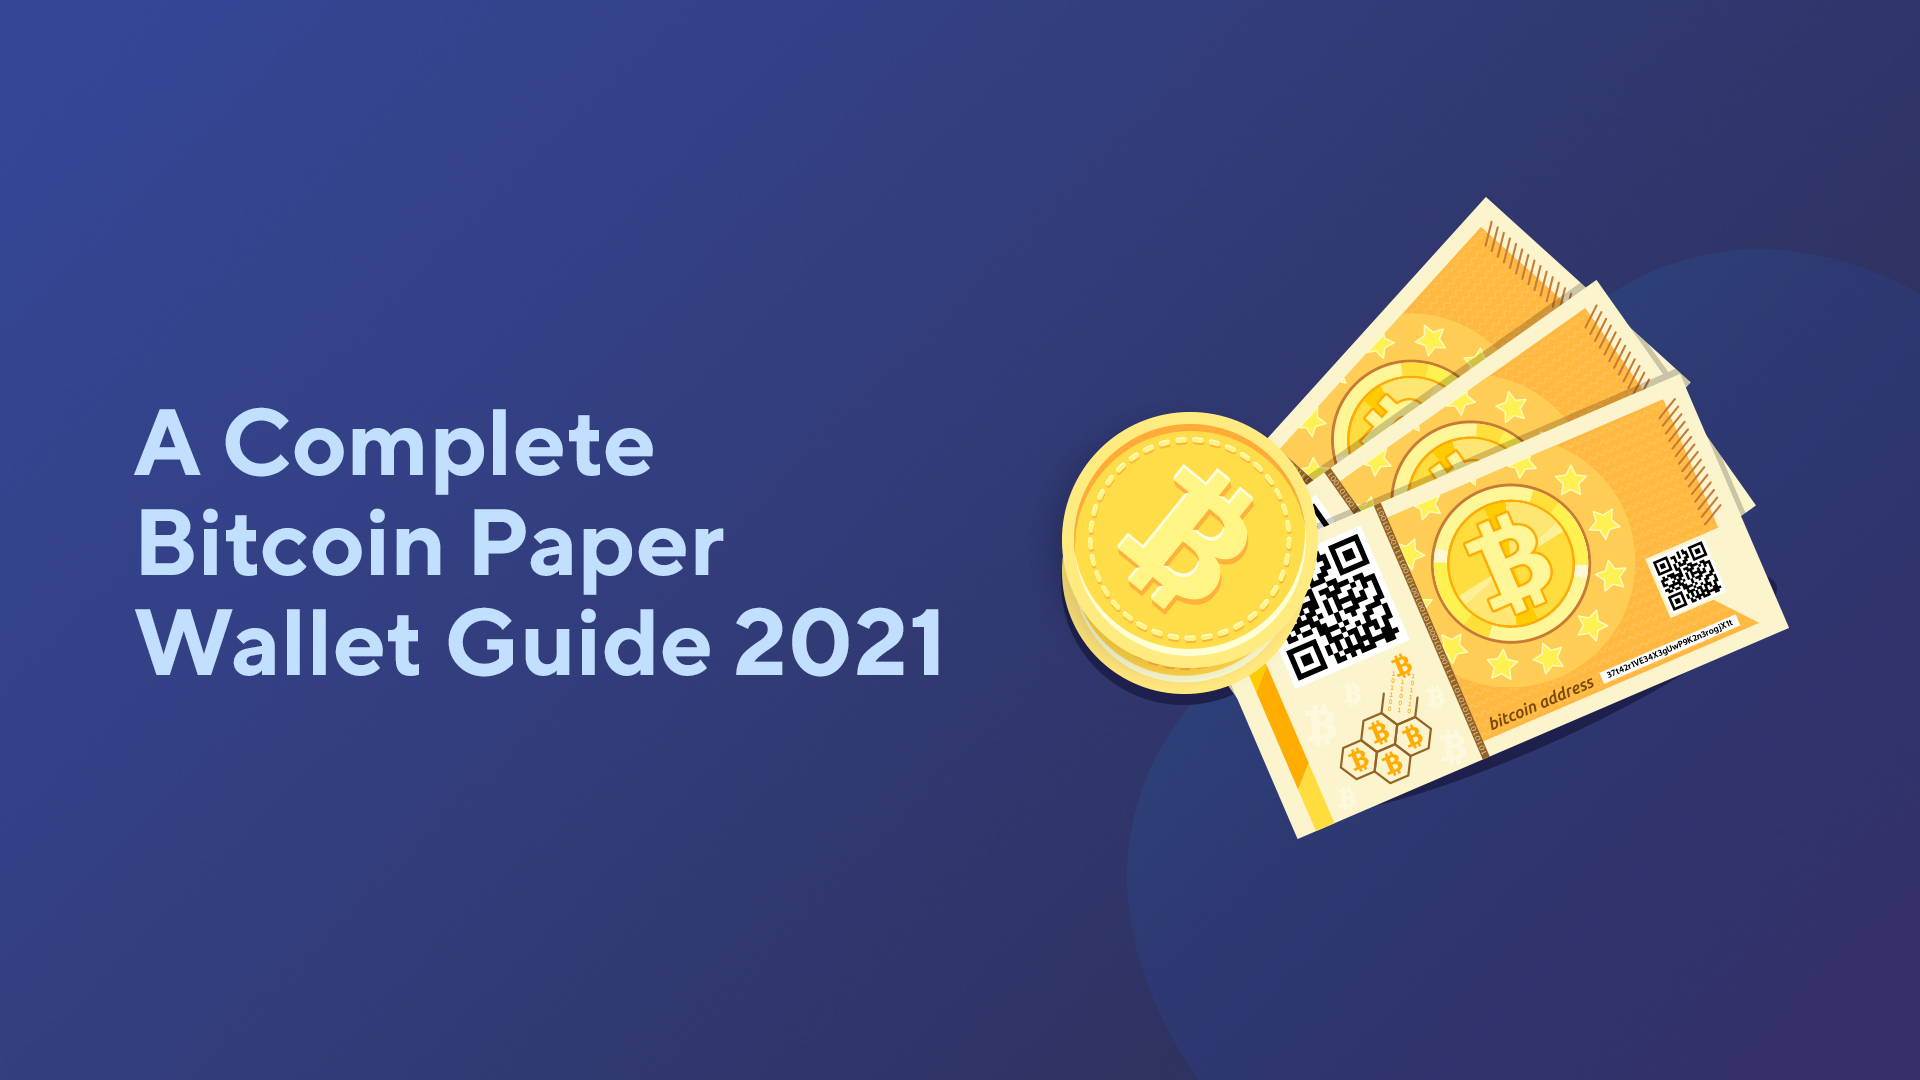 A Complete Bitcoin Paper Wallet Guide 2021